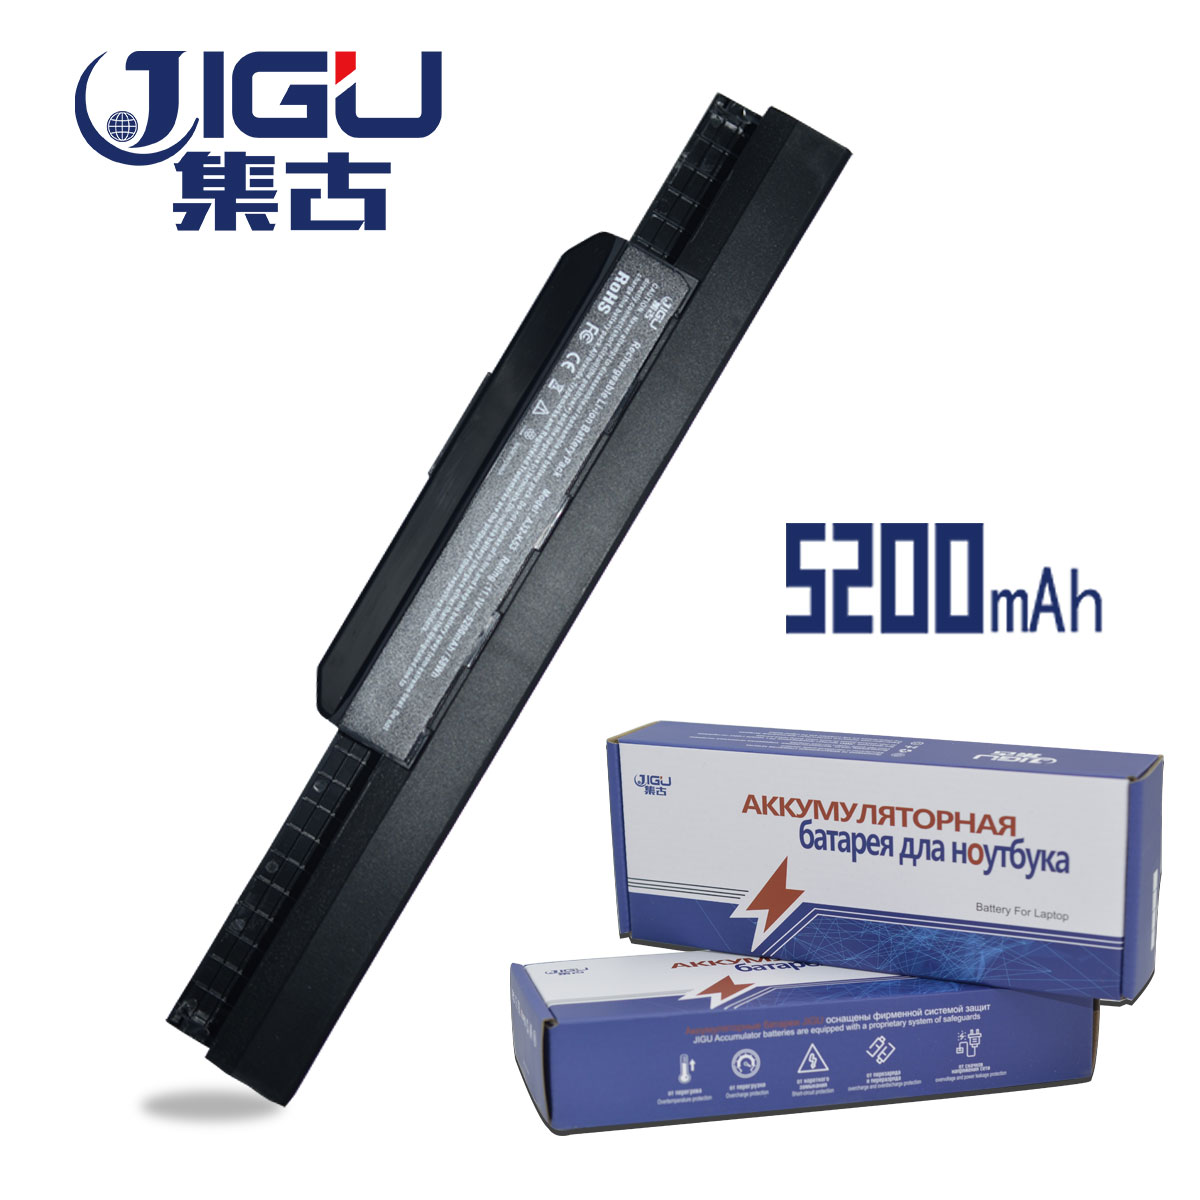 JIGU 5200 MAH Laptop Battery For Asus 6 CELLS A31-K53 A32-K53 A41-K53 A42-K53 A43 A53 A54 A83 K43 K53 P43 P53 X43 X44